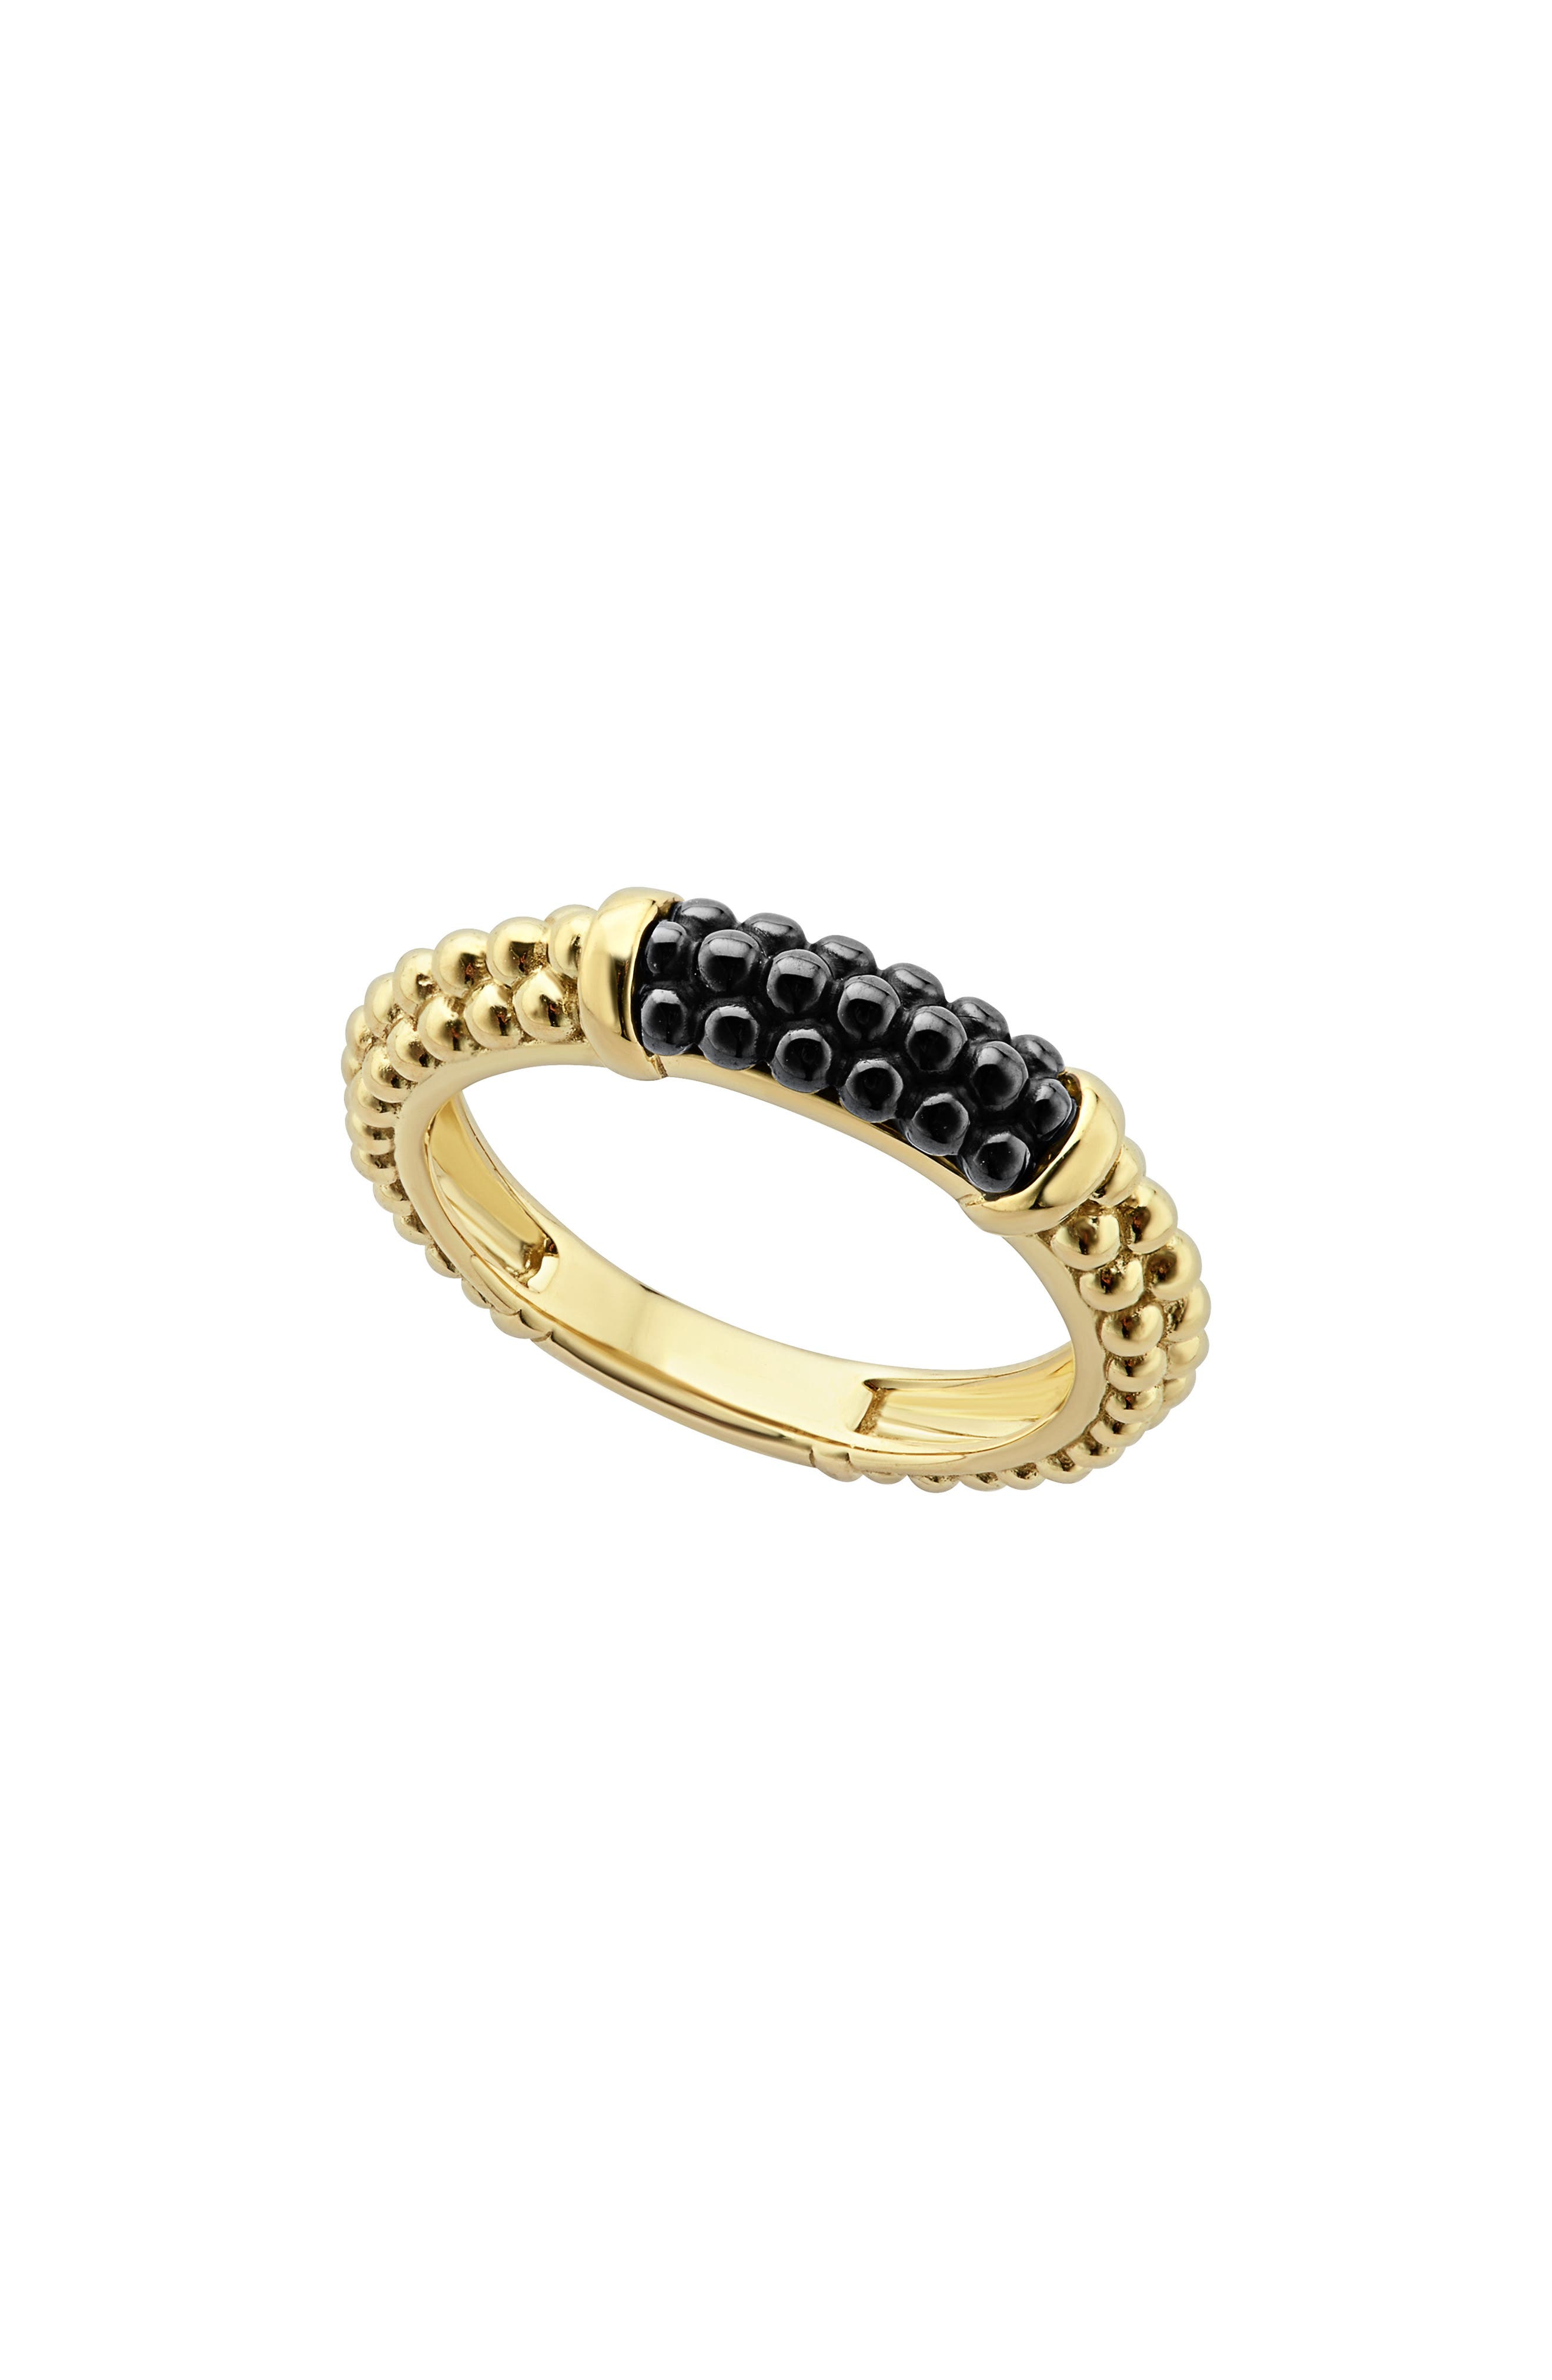 Gold & Black Caviar Stacking Ring,                         Main,                         color, GOLD